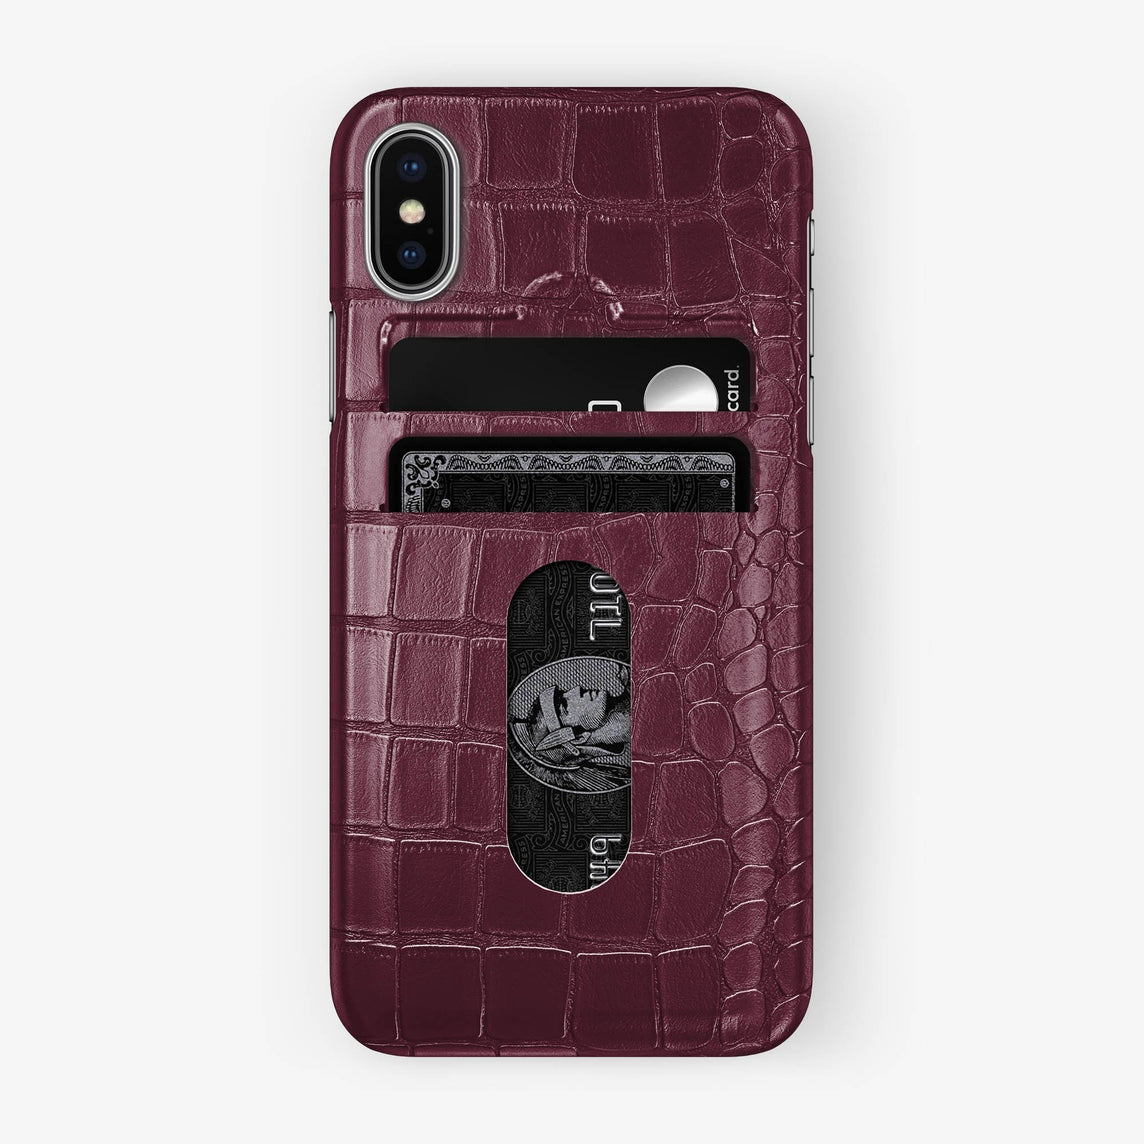 Alligator Card Holder Case iPhone X/Xs | Burgundy - Stainless Steel without-personalization